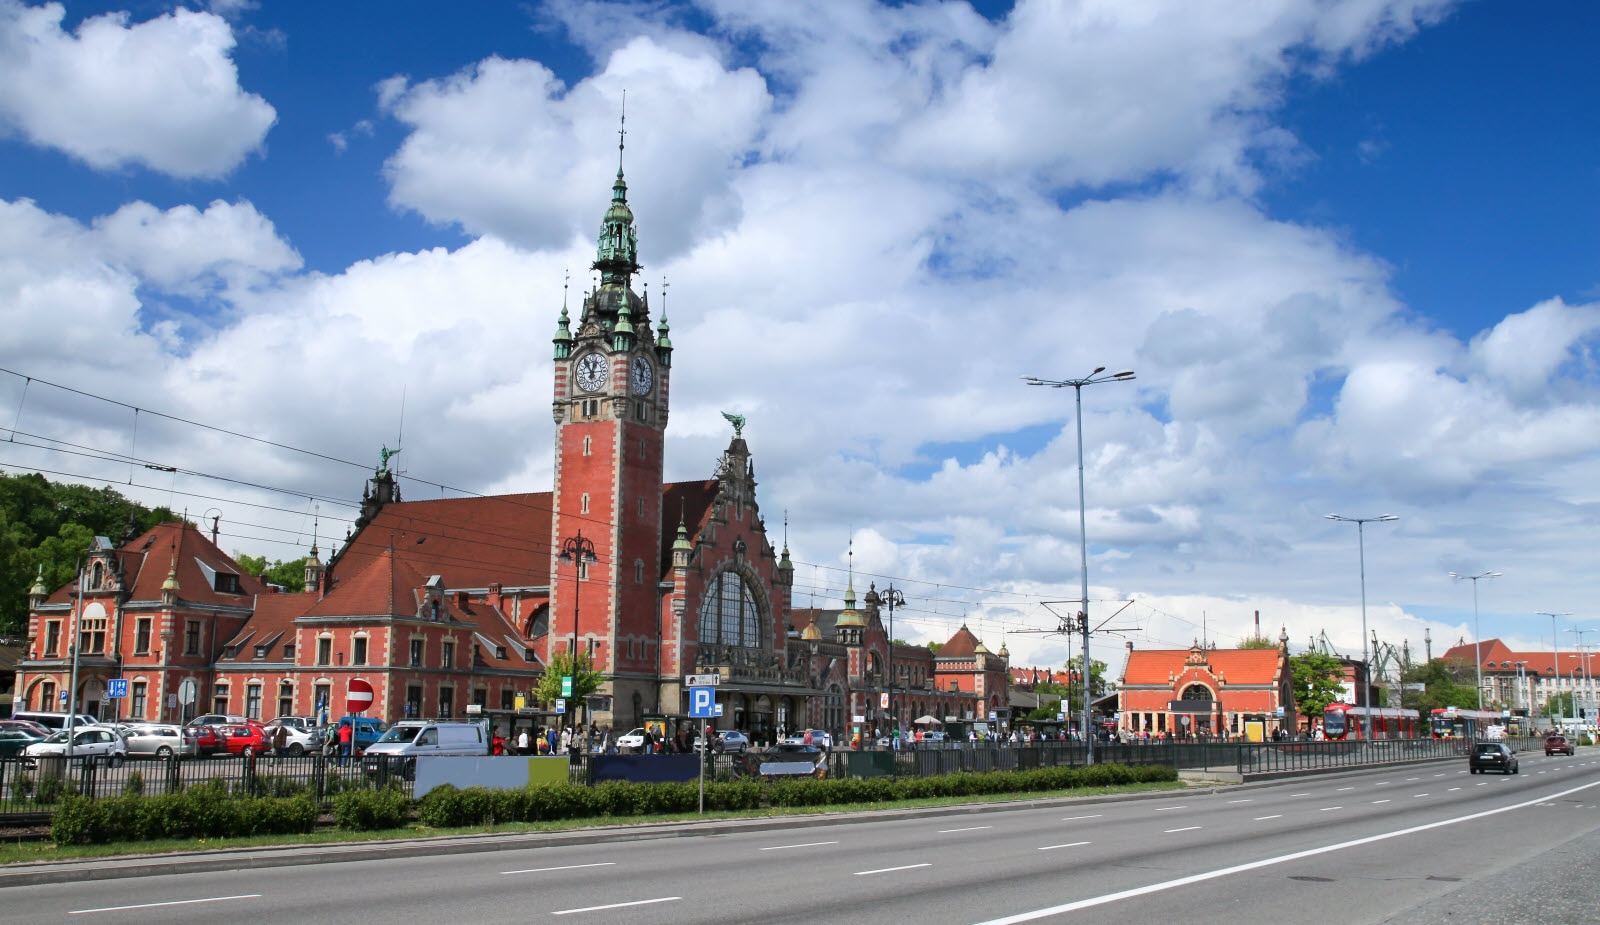 Historic railway station in Gdansk, Poland